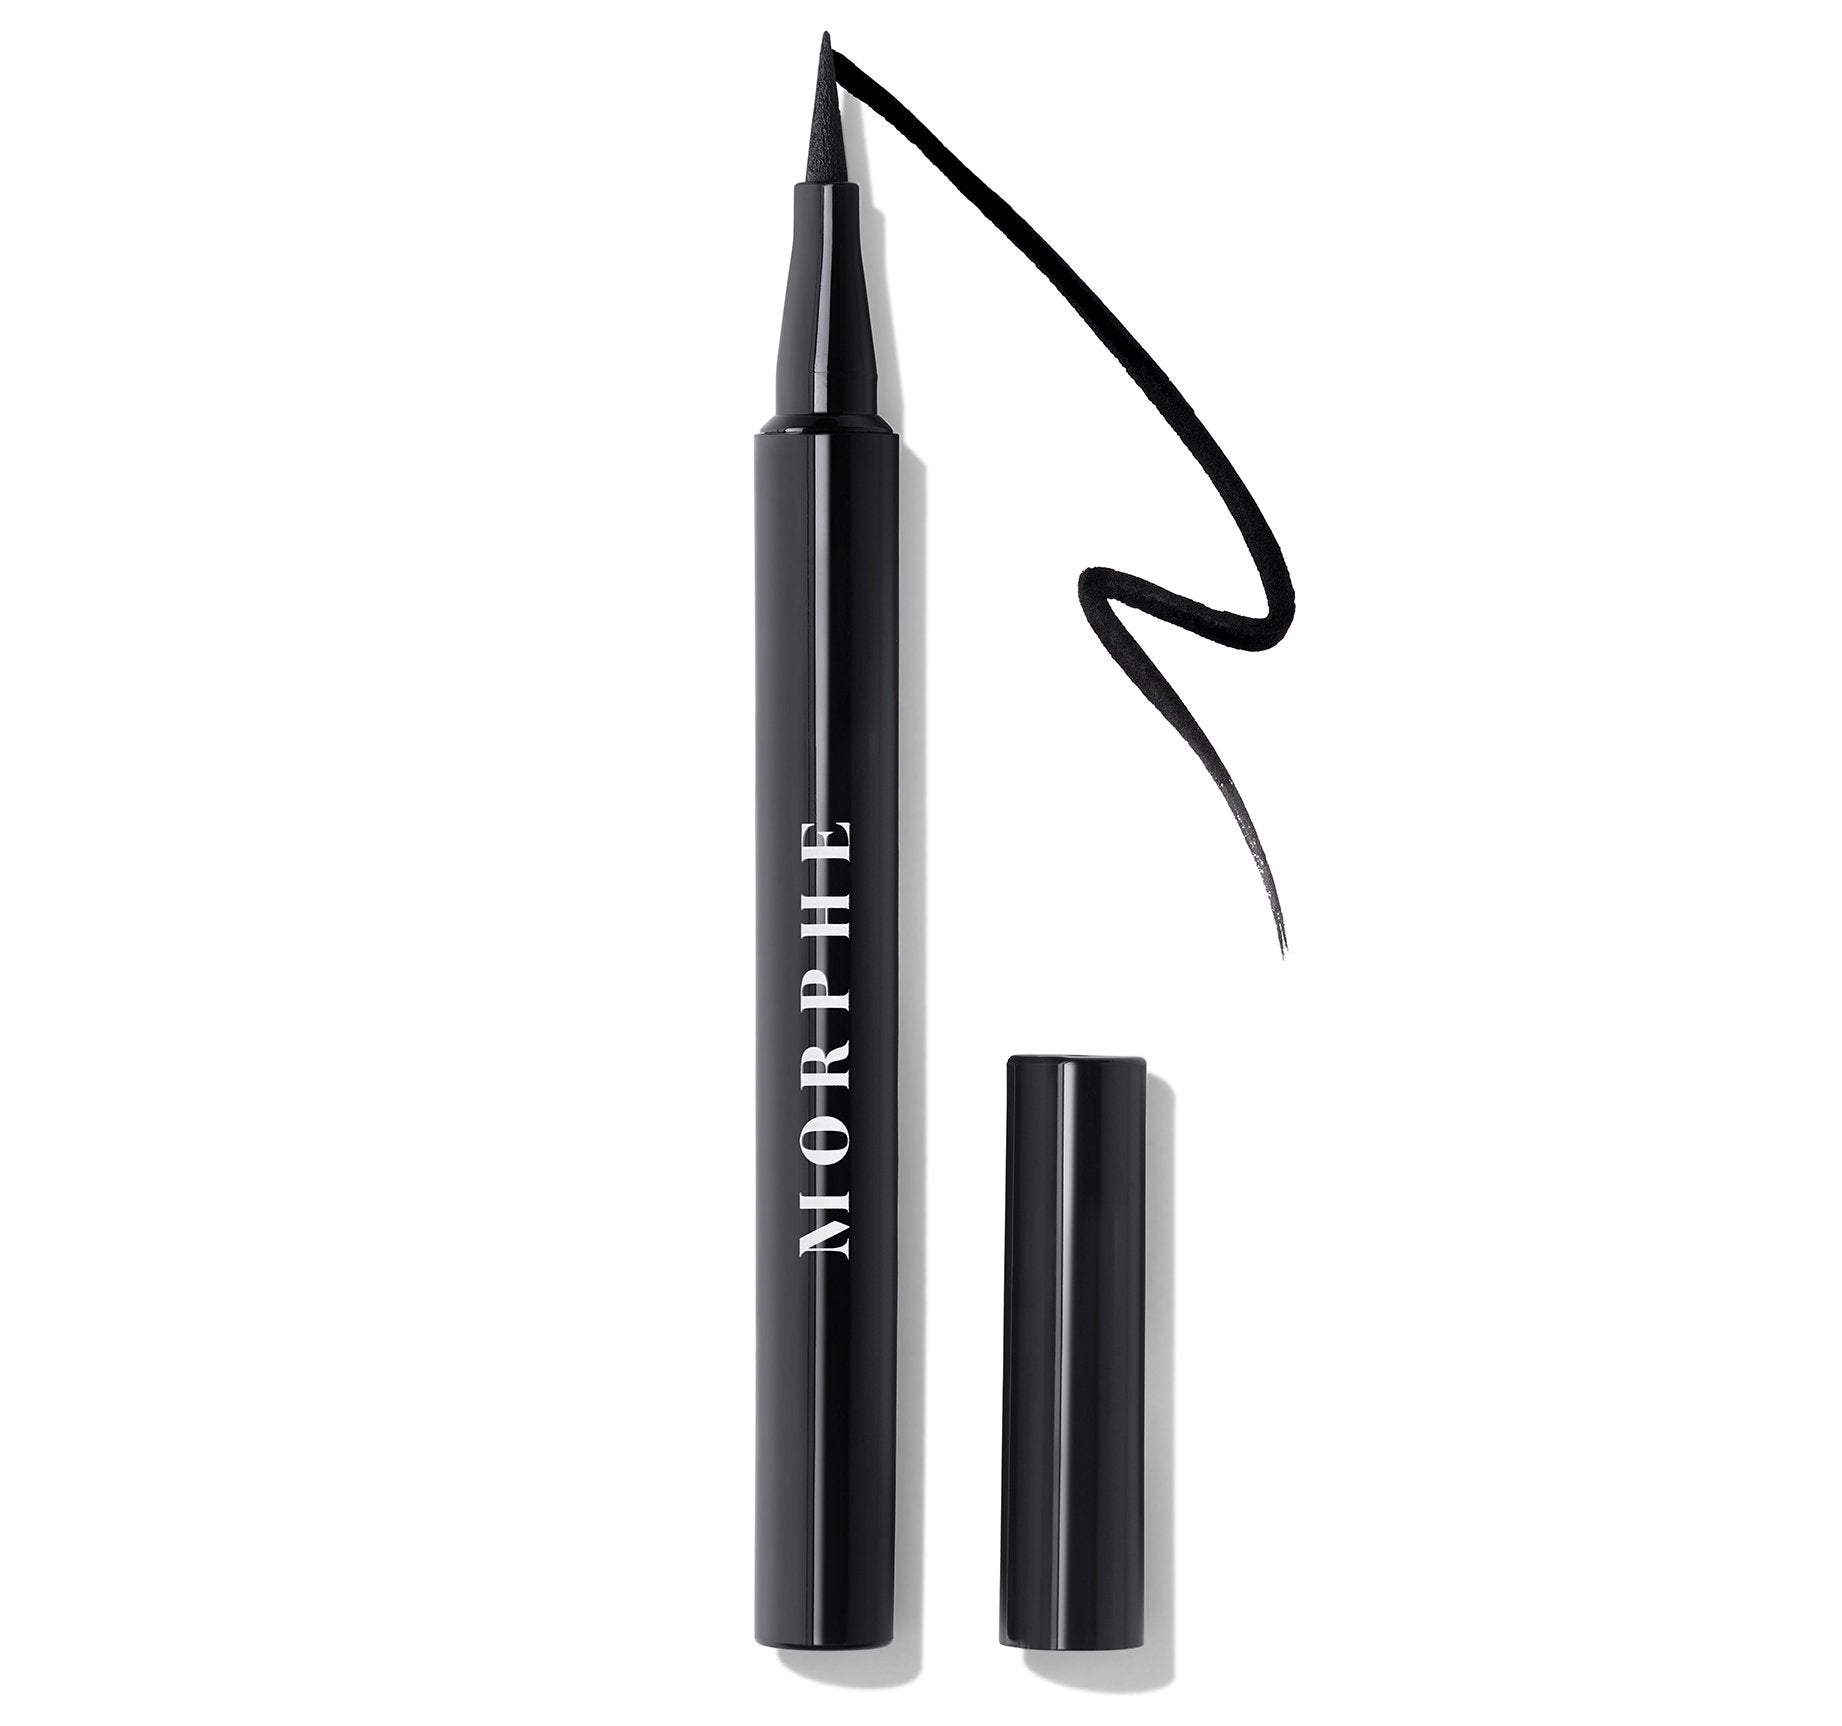 FELT-TIP LIQUID LINER, view larger image